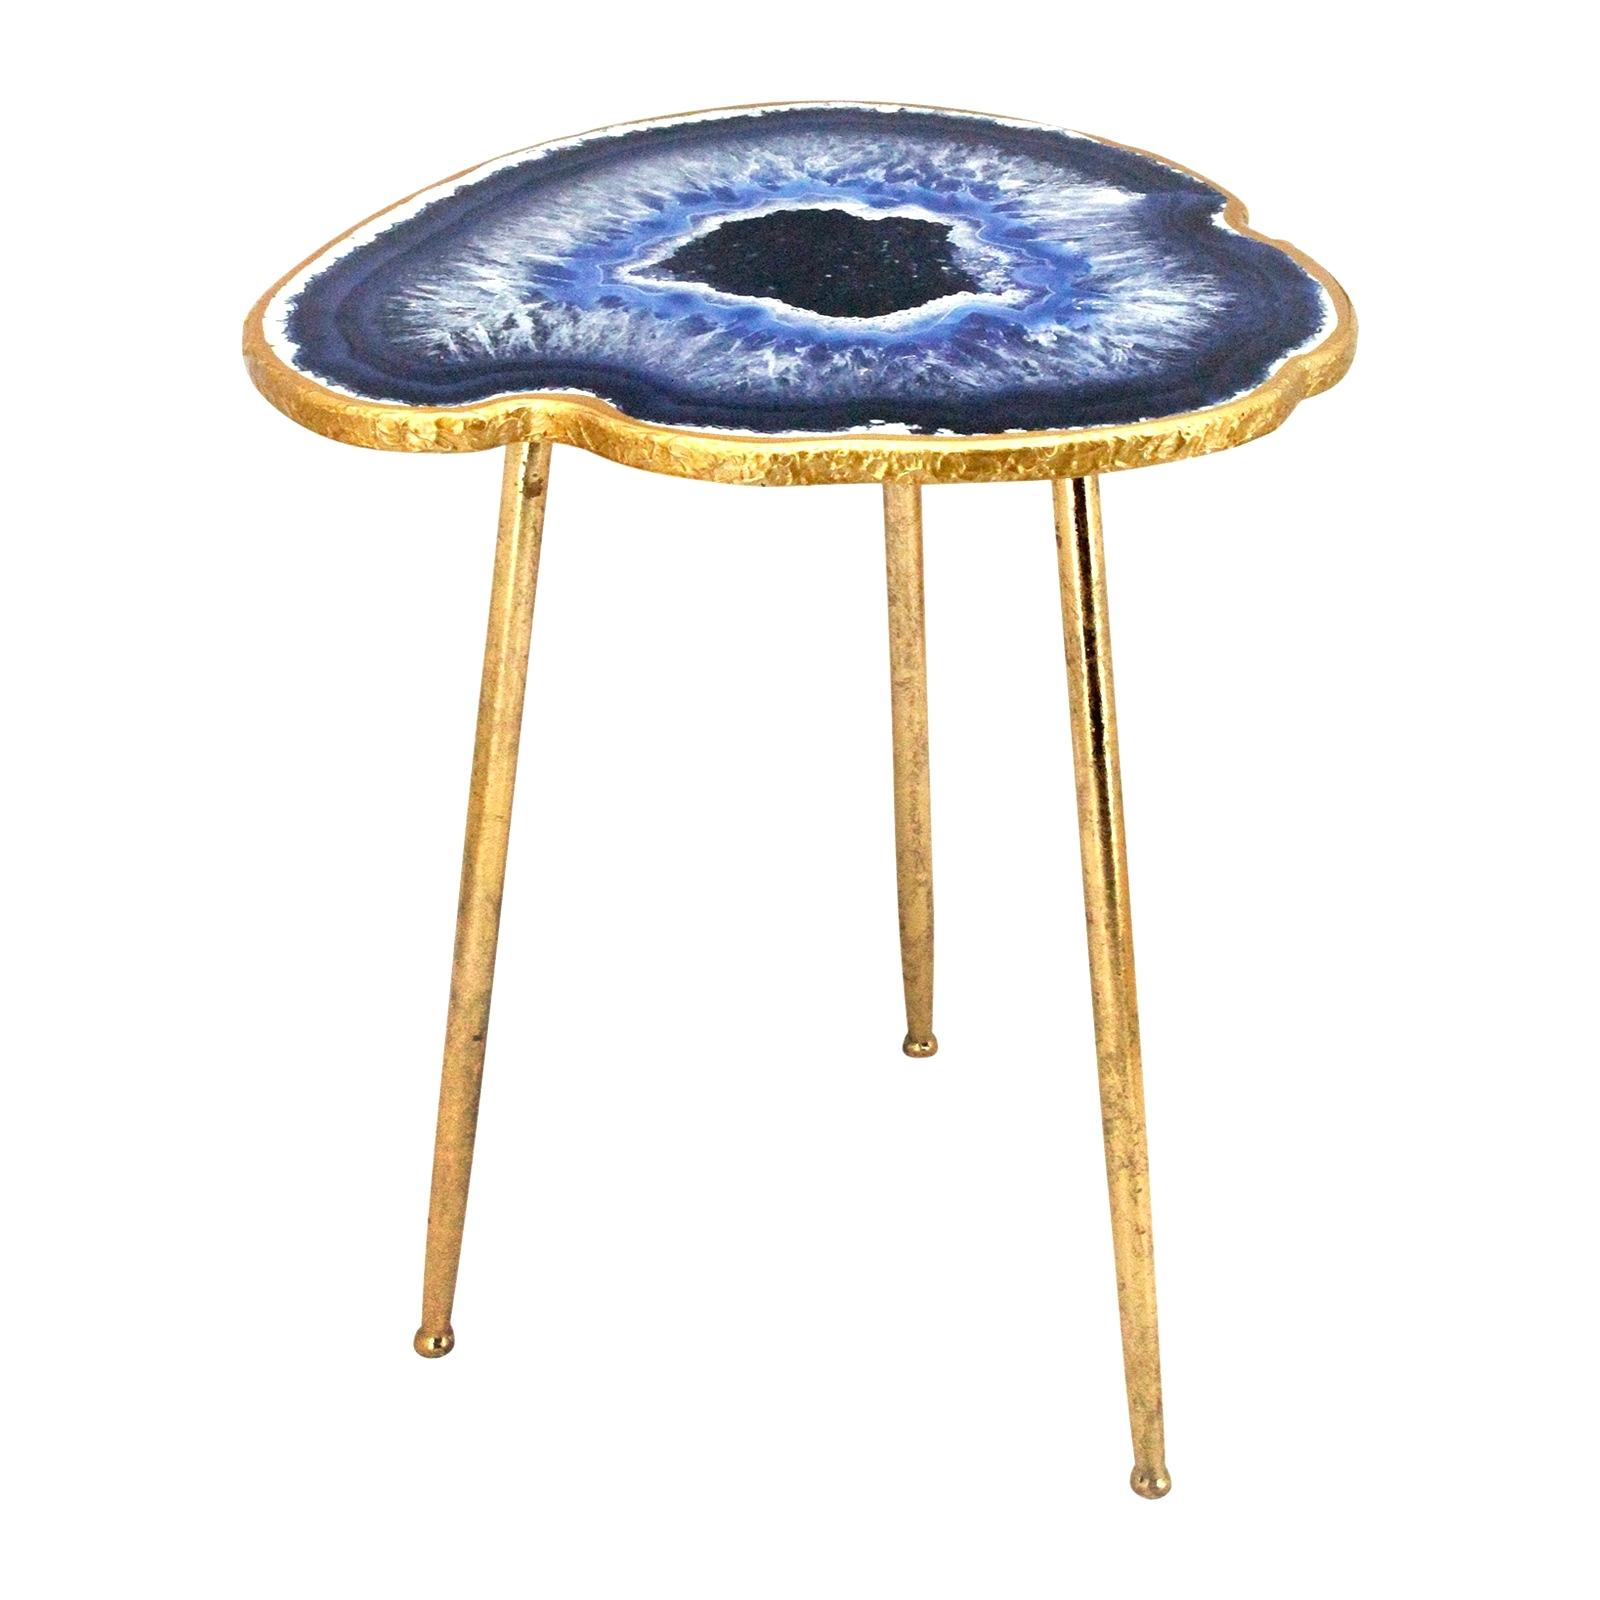 agate accent table gold and blue metal threshold glass faux narrow outdoor nautical entryway mudroom furniture white coffee round end tables bedroom ideas imitation champagne